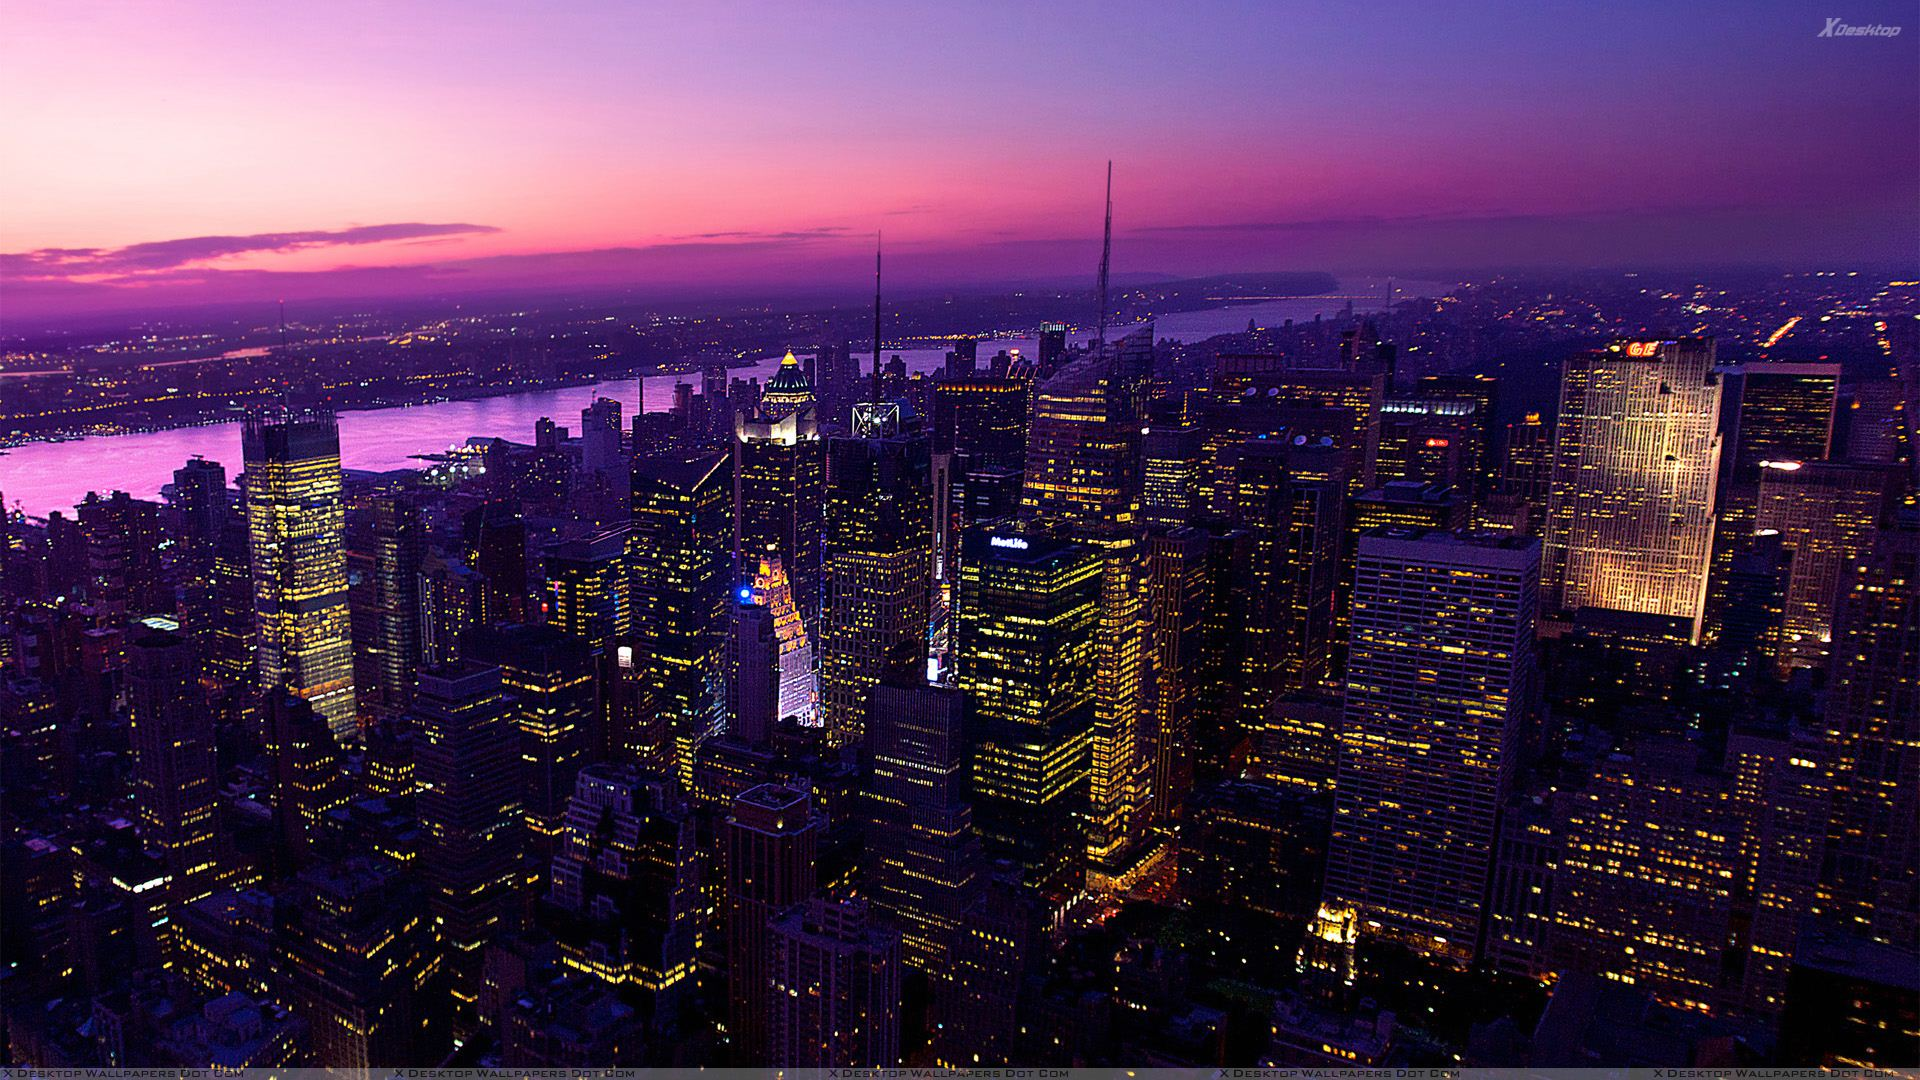 Free Download New York City Night Scene Wallpaper 1920x1080 For Your Desktop Mobile Tablet Explore 43 New York Scenes Wallpaper New York City Wallpaper New Hd Wallpaper New York Wallpaper Hd